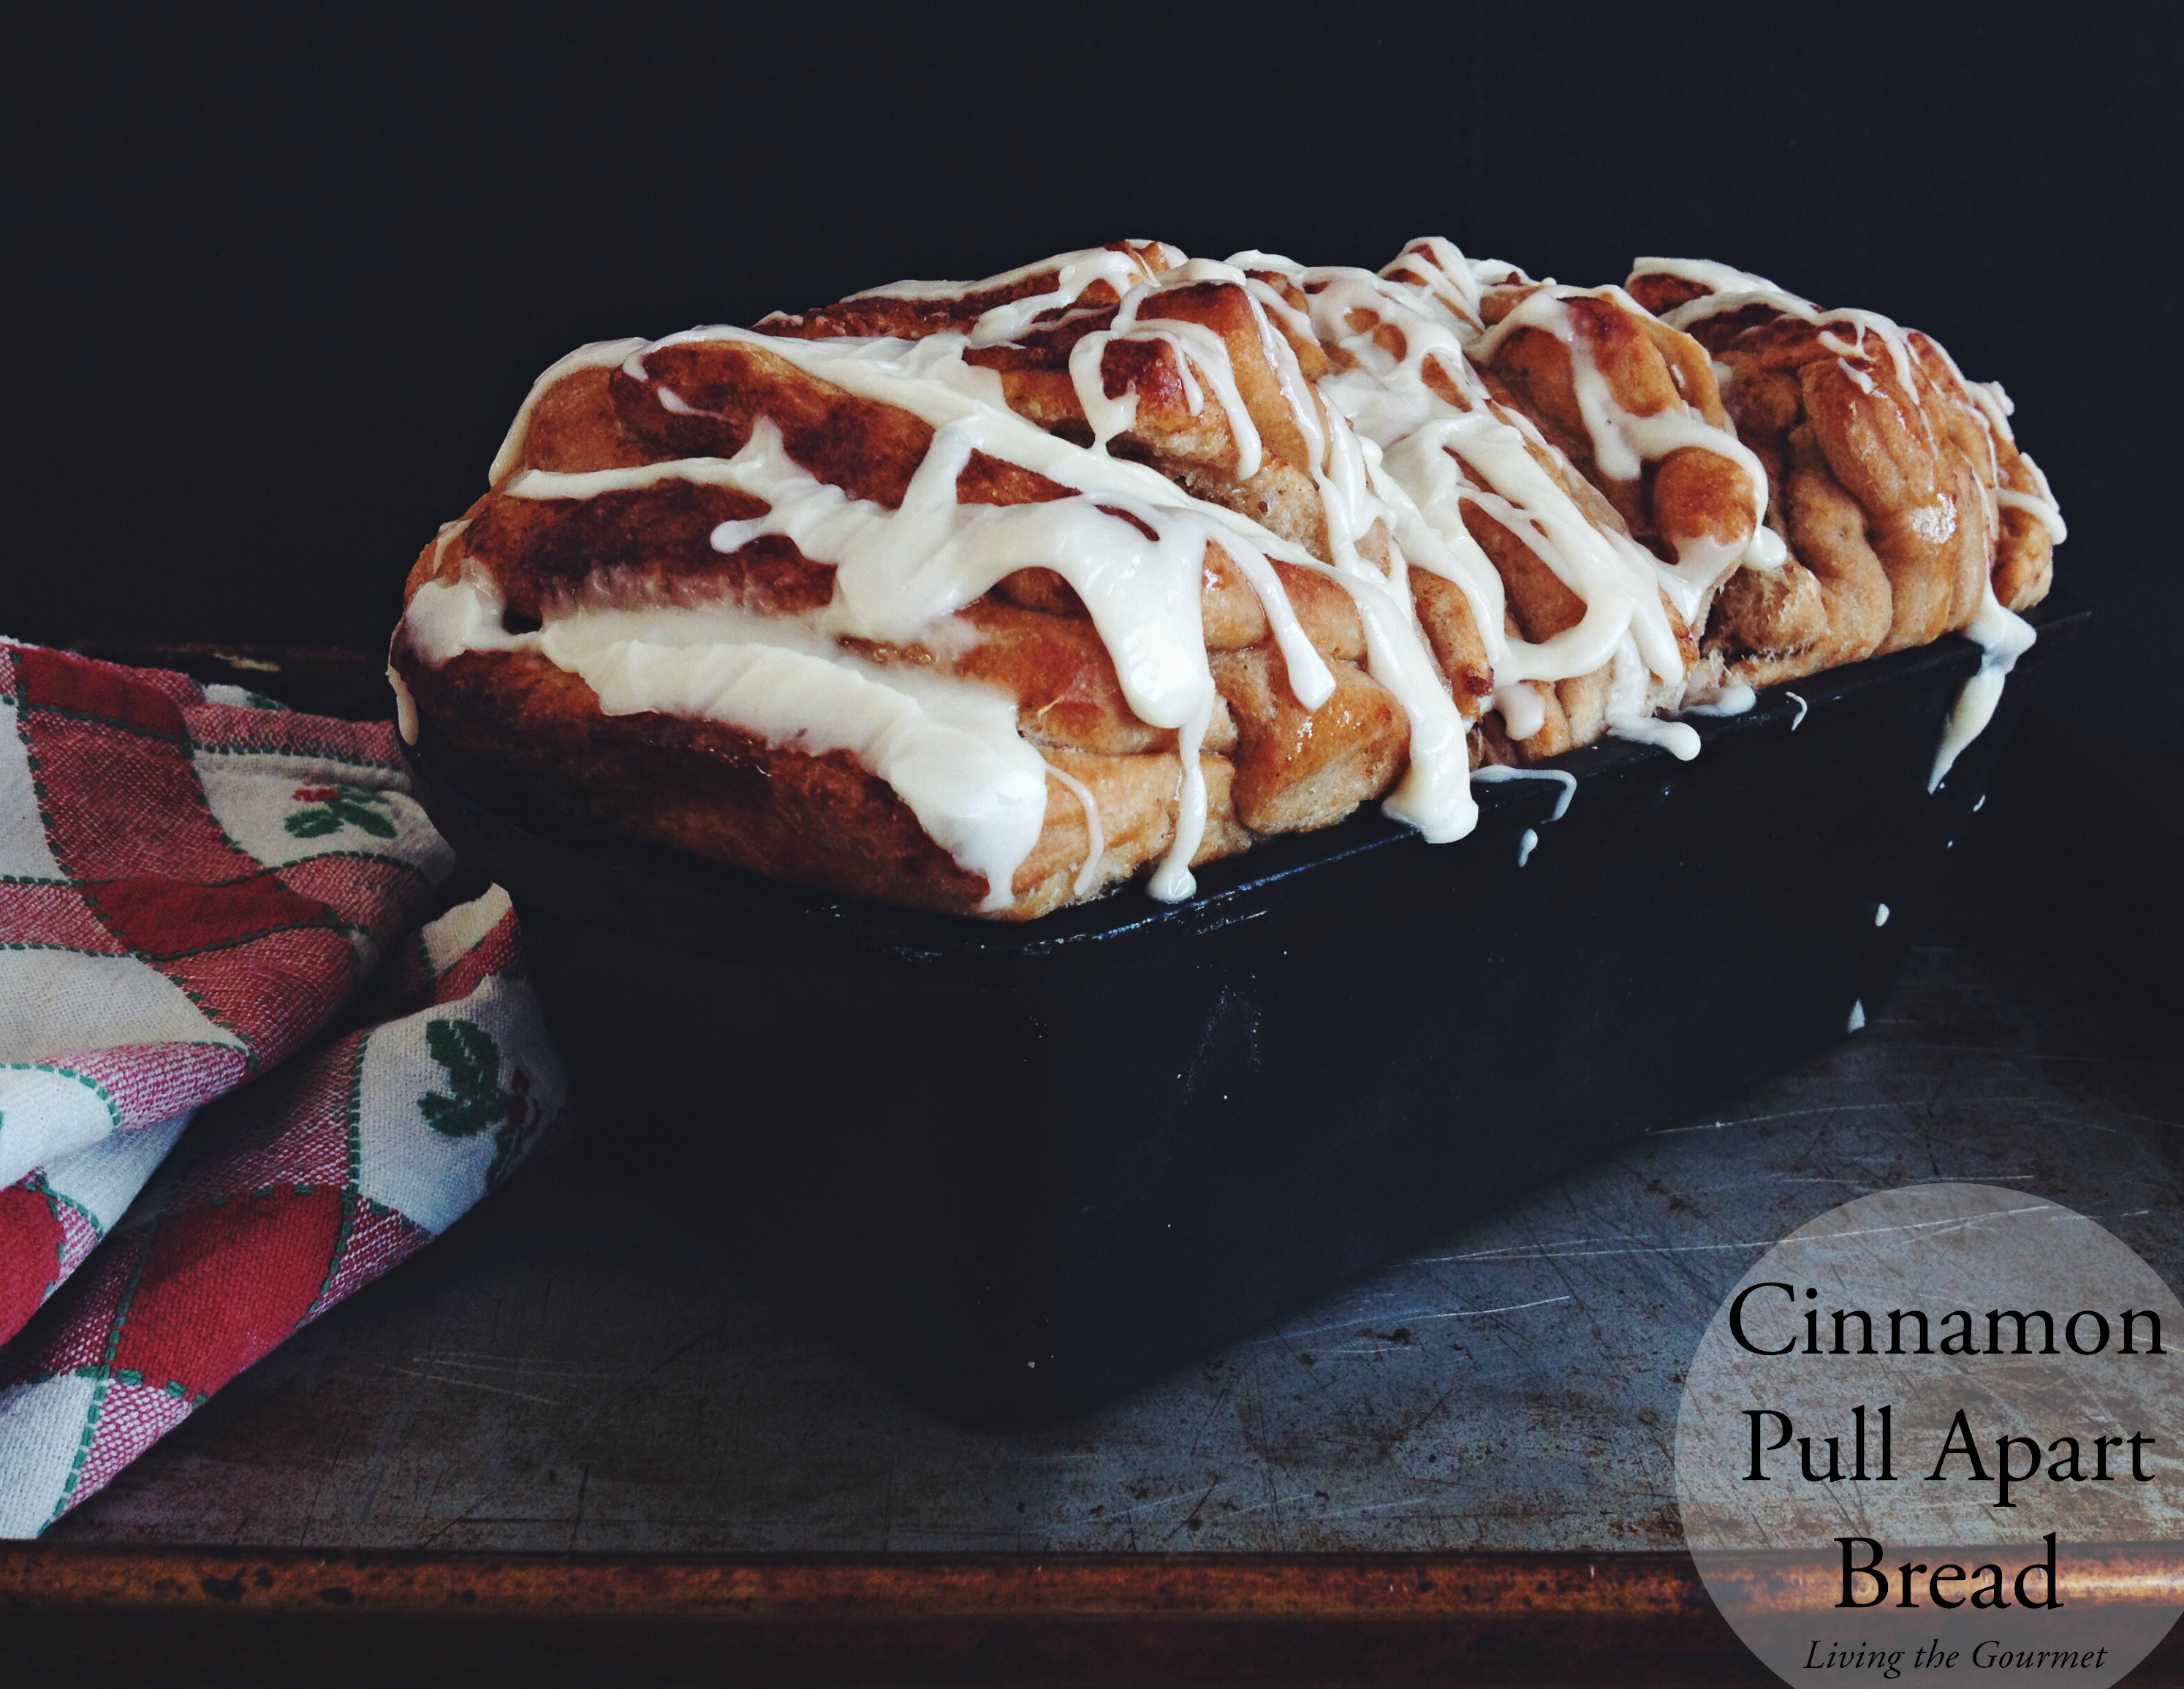 Living the Gourmet: Cinnamon Pull Apart Bread